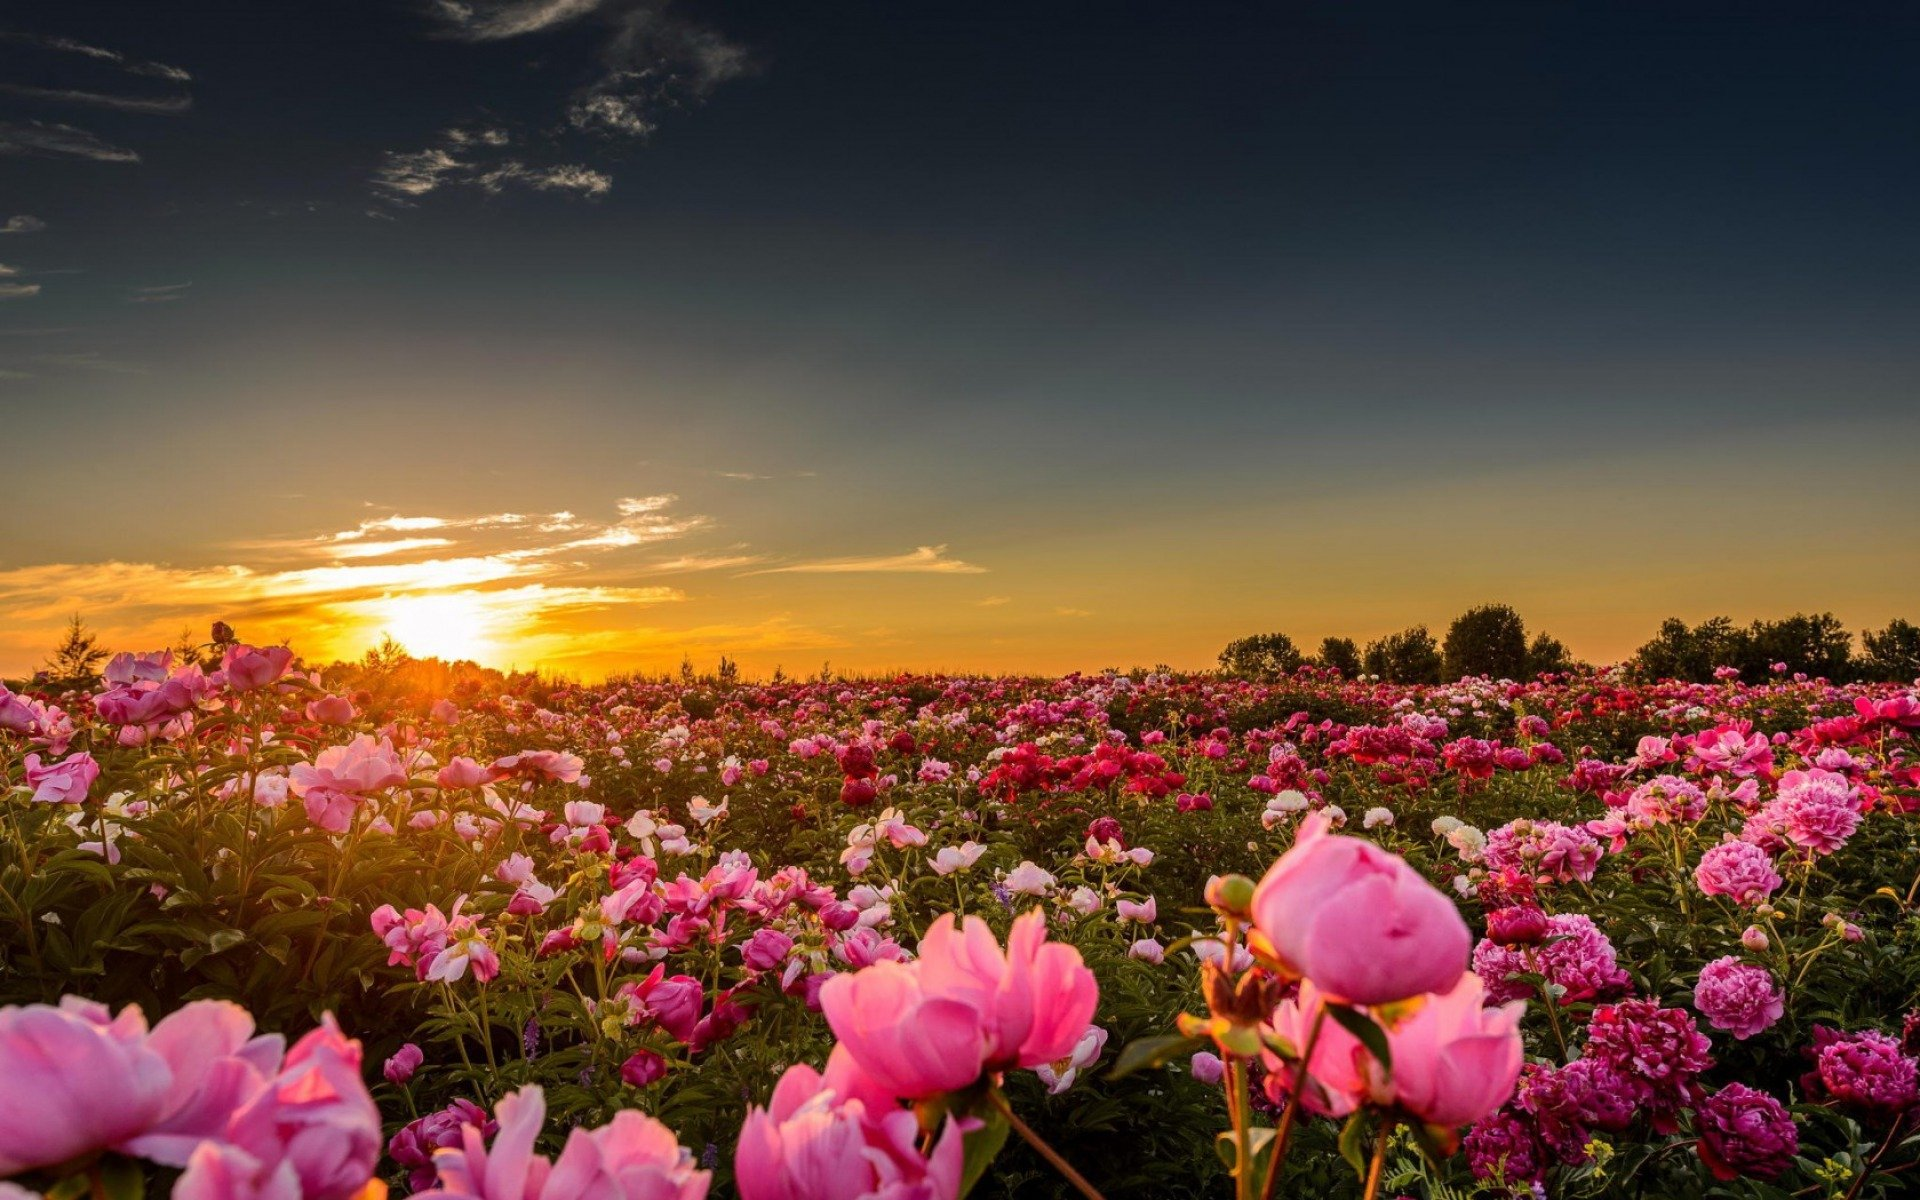 pink peonies in the sunset flower hd wallpaper 1920x1200 10742 1920x1200